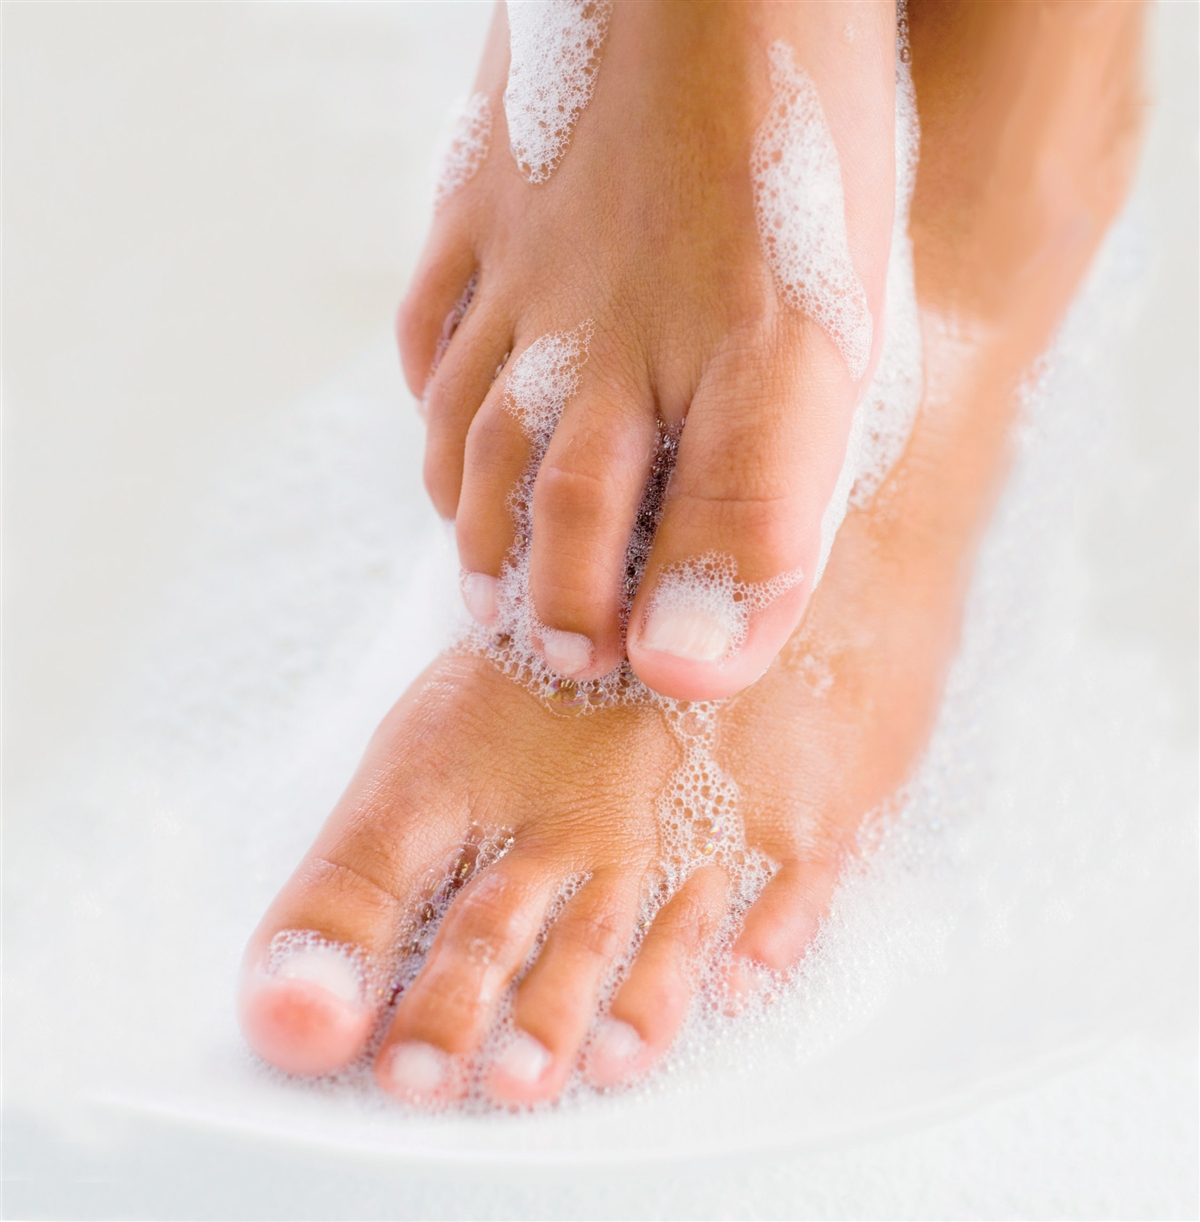 Diabetic Defense Daily Therapy Foot Wash P3076